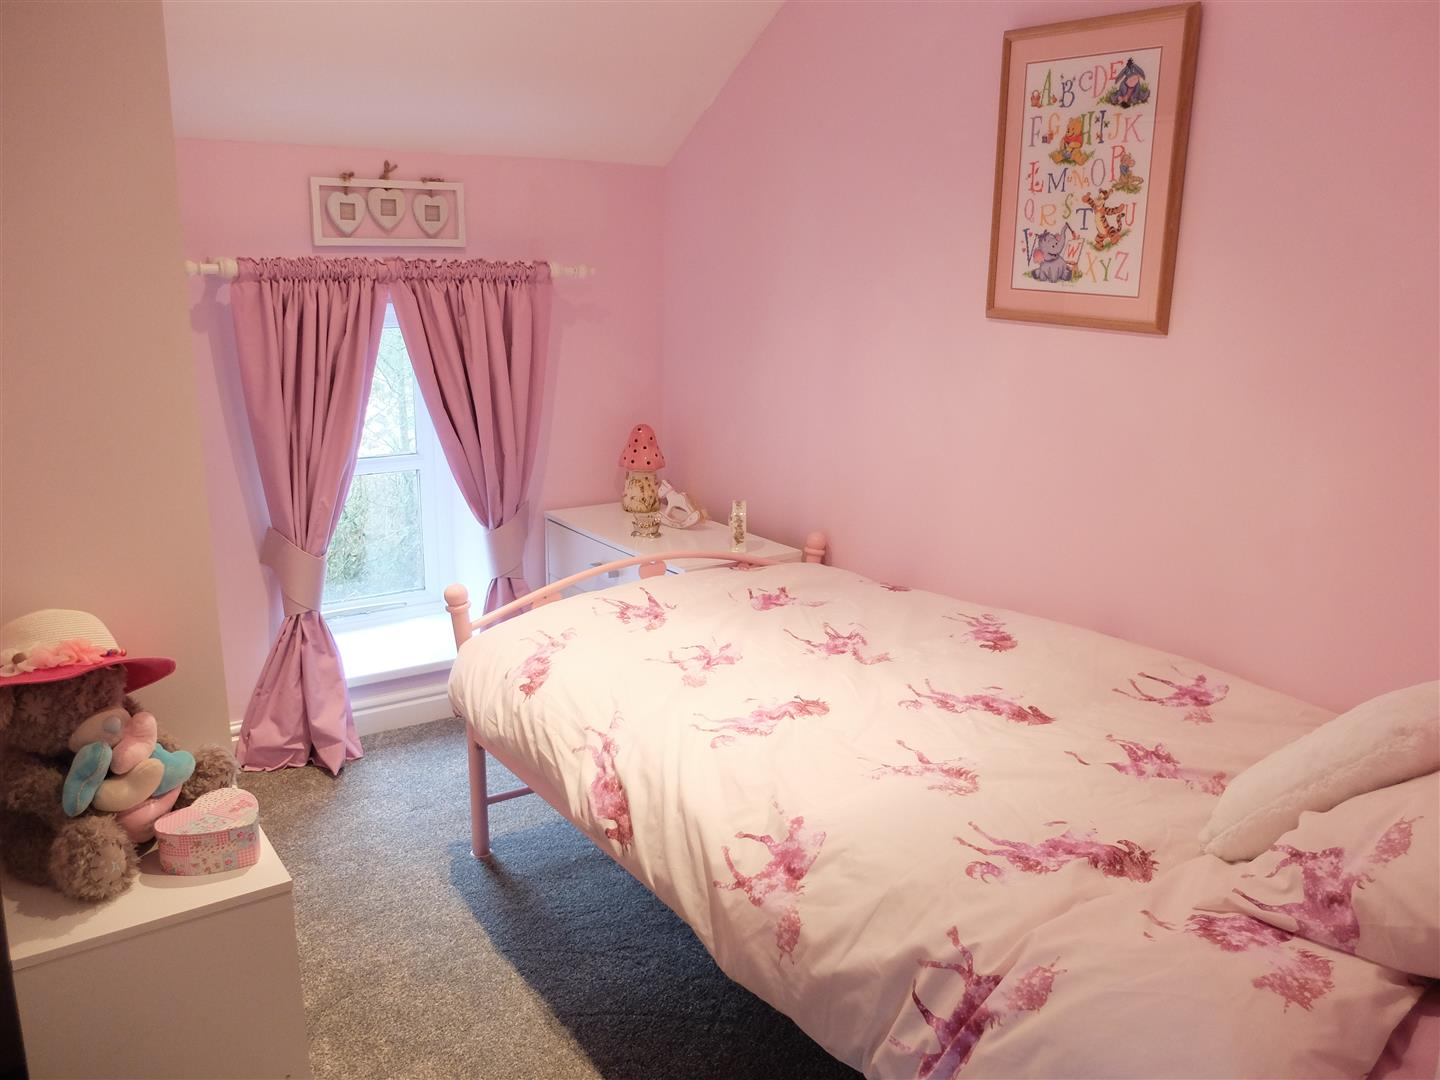 2 Bedrooms House - Semi-Detached On Sale 145,000